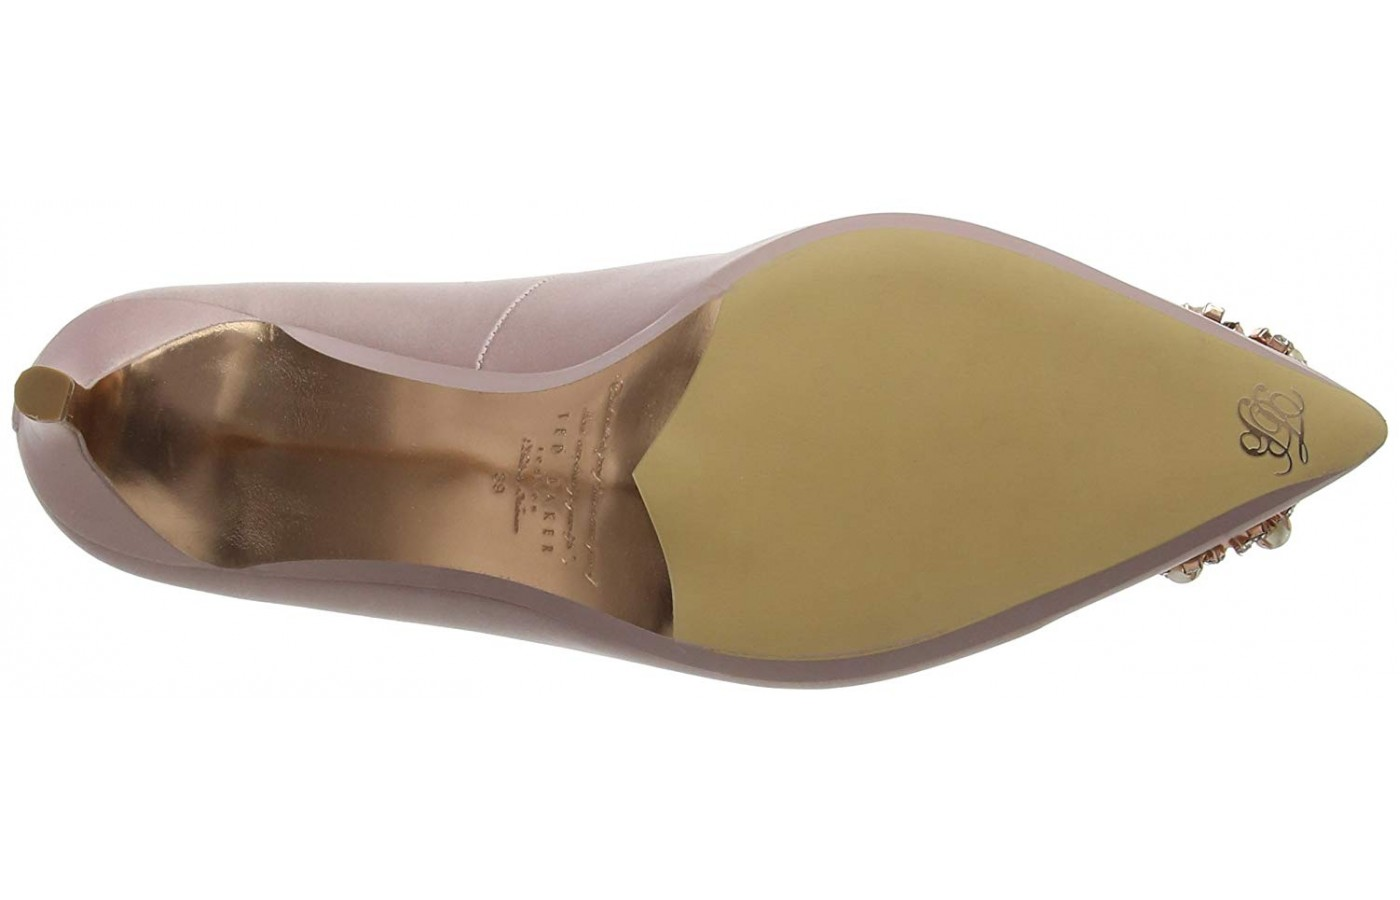 Ted Baker Dahrlil sole